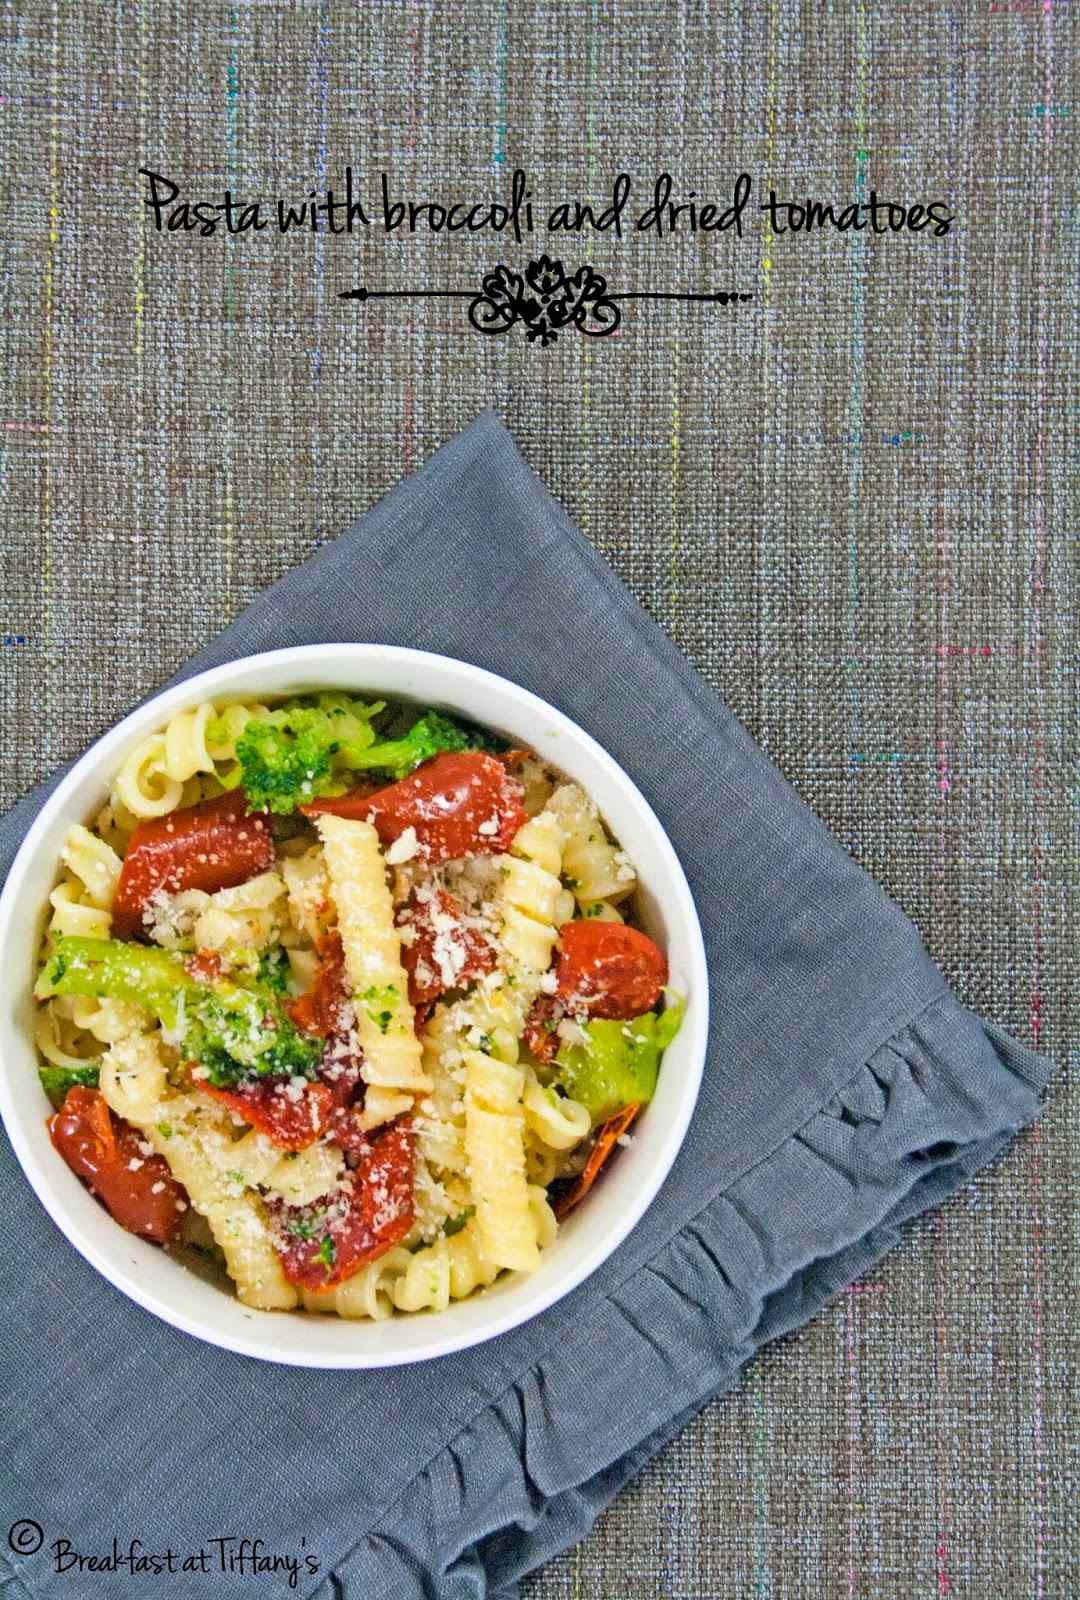 Ricetta: Pasta con broccoli e pomodorini secchi / pasta with broccoli and dried tomatoes